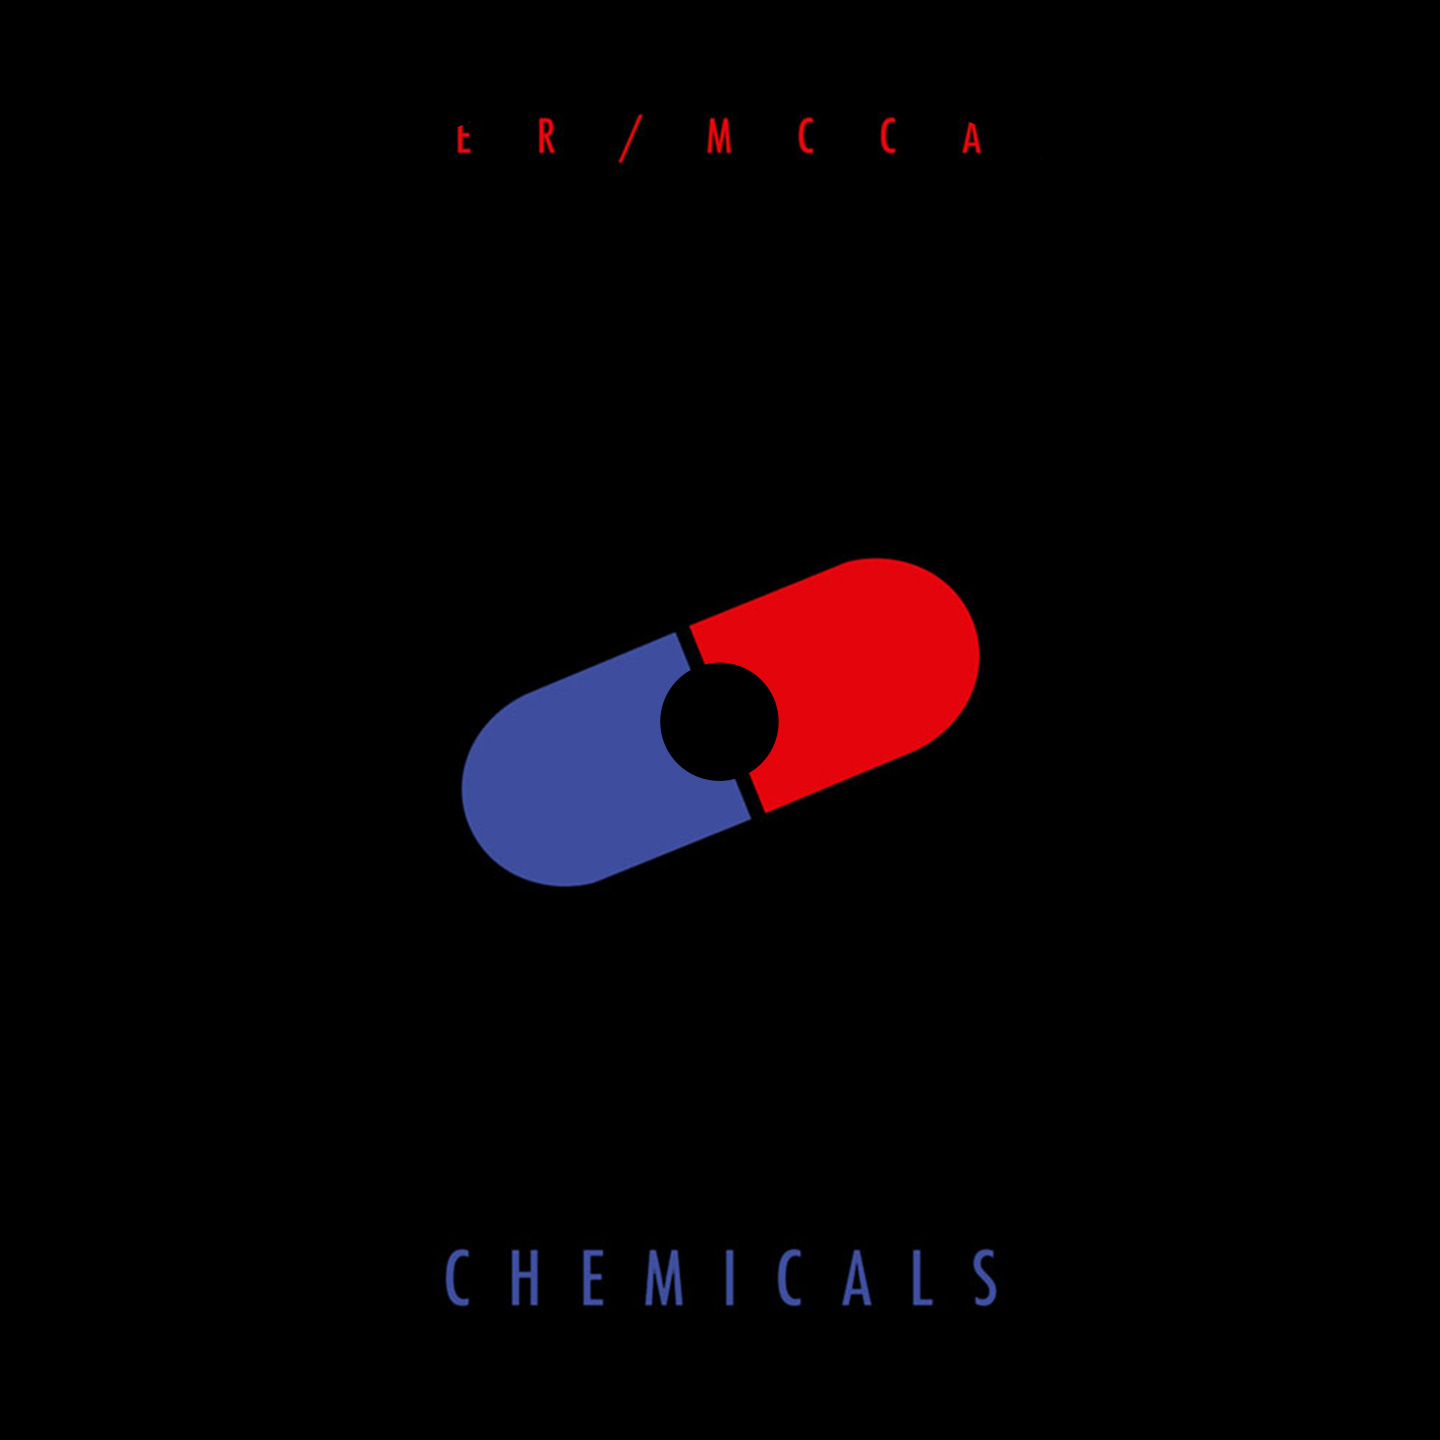 Fixmer / McCarthy - Chemicals